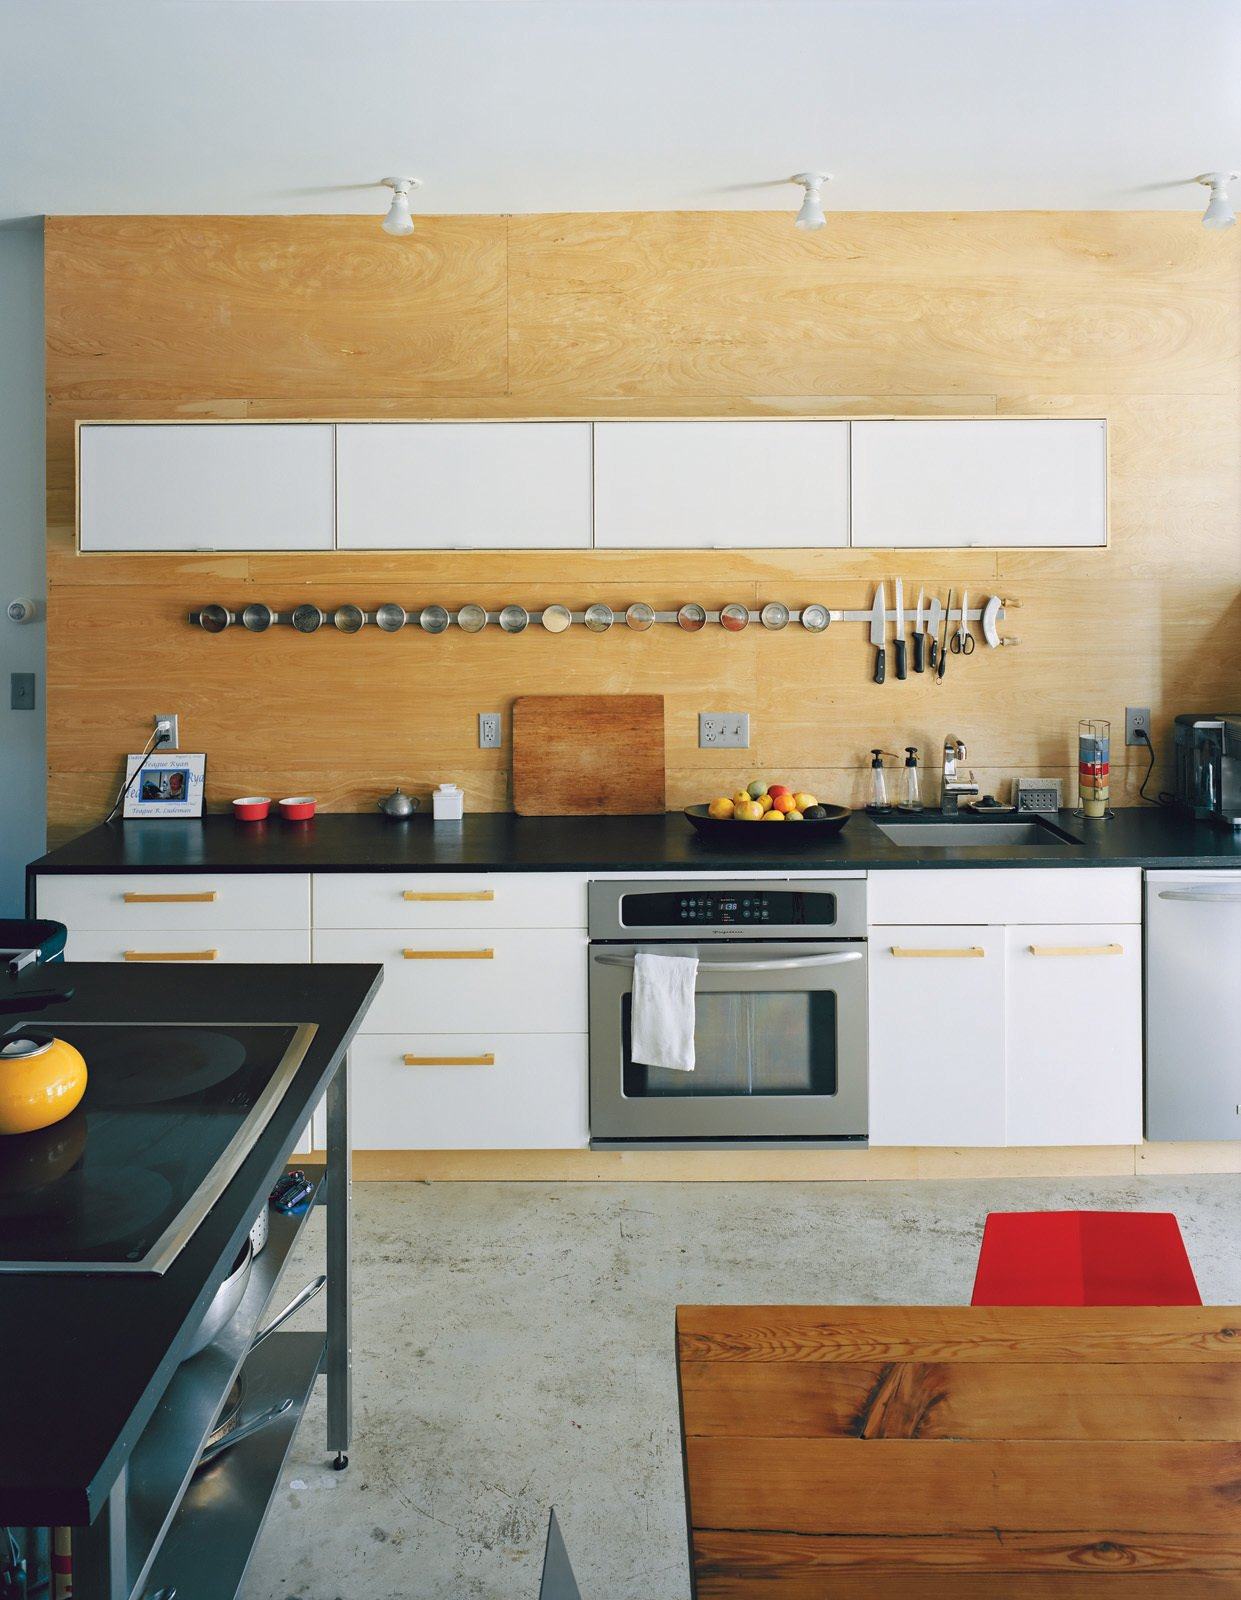 Kitchen, Concrete Floor, White Cabinet, Cooktops, Wood Backsplashe, Ceiling Lighting, Undermount Sink, Wall Oven, and Dishwasher Concrete floors and an Ikea kitchen and spice rack make for an affordable, cleanly geometric aesthetic at the back of the bottom floor. The appliances are by Frigidaire, and the black countertops are sealed with Eco Tuff by Eco Procote.  Photo 3 of 11 in Green Urban Housing in Philadelphia